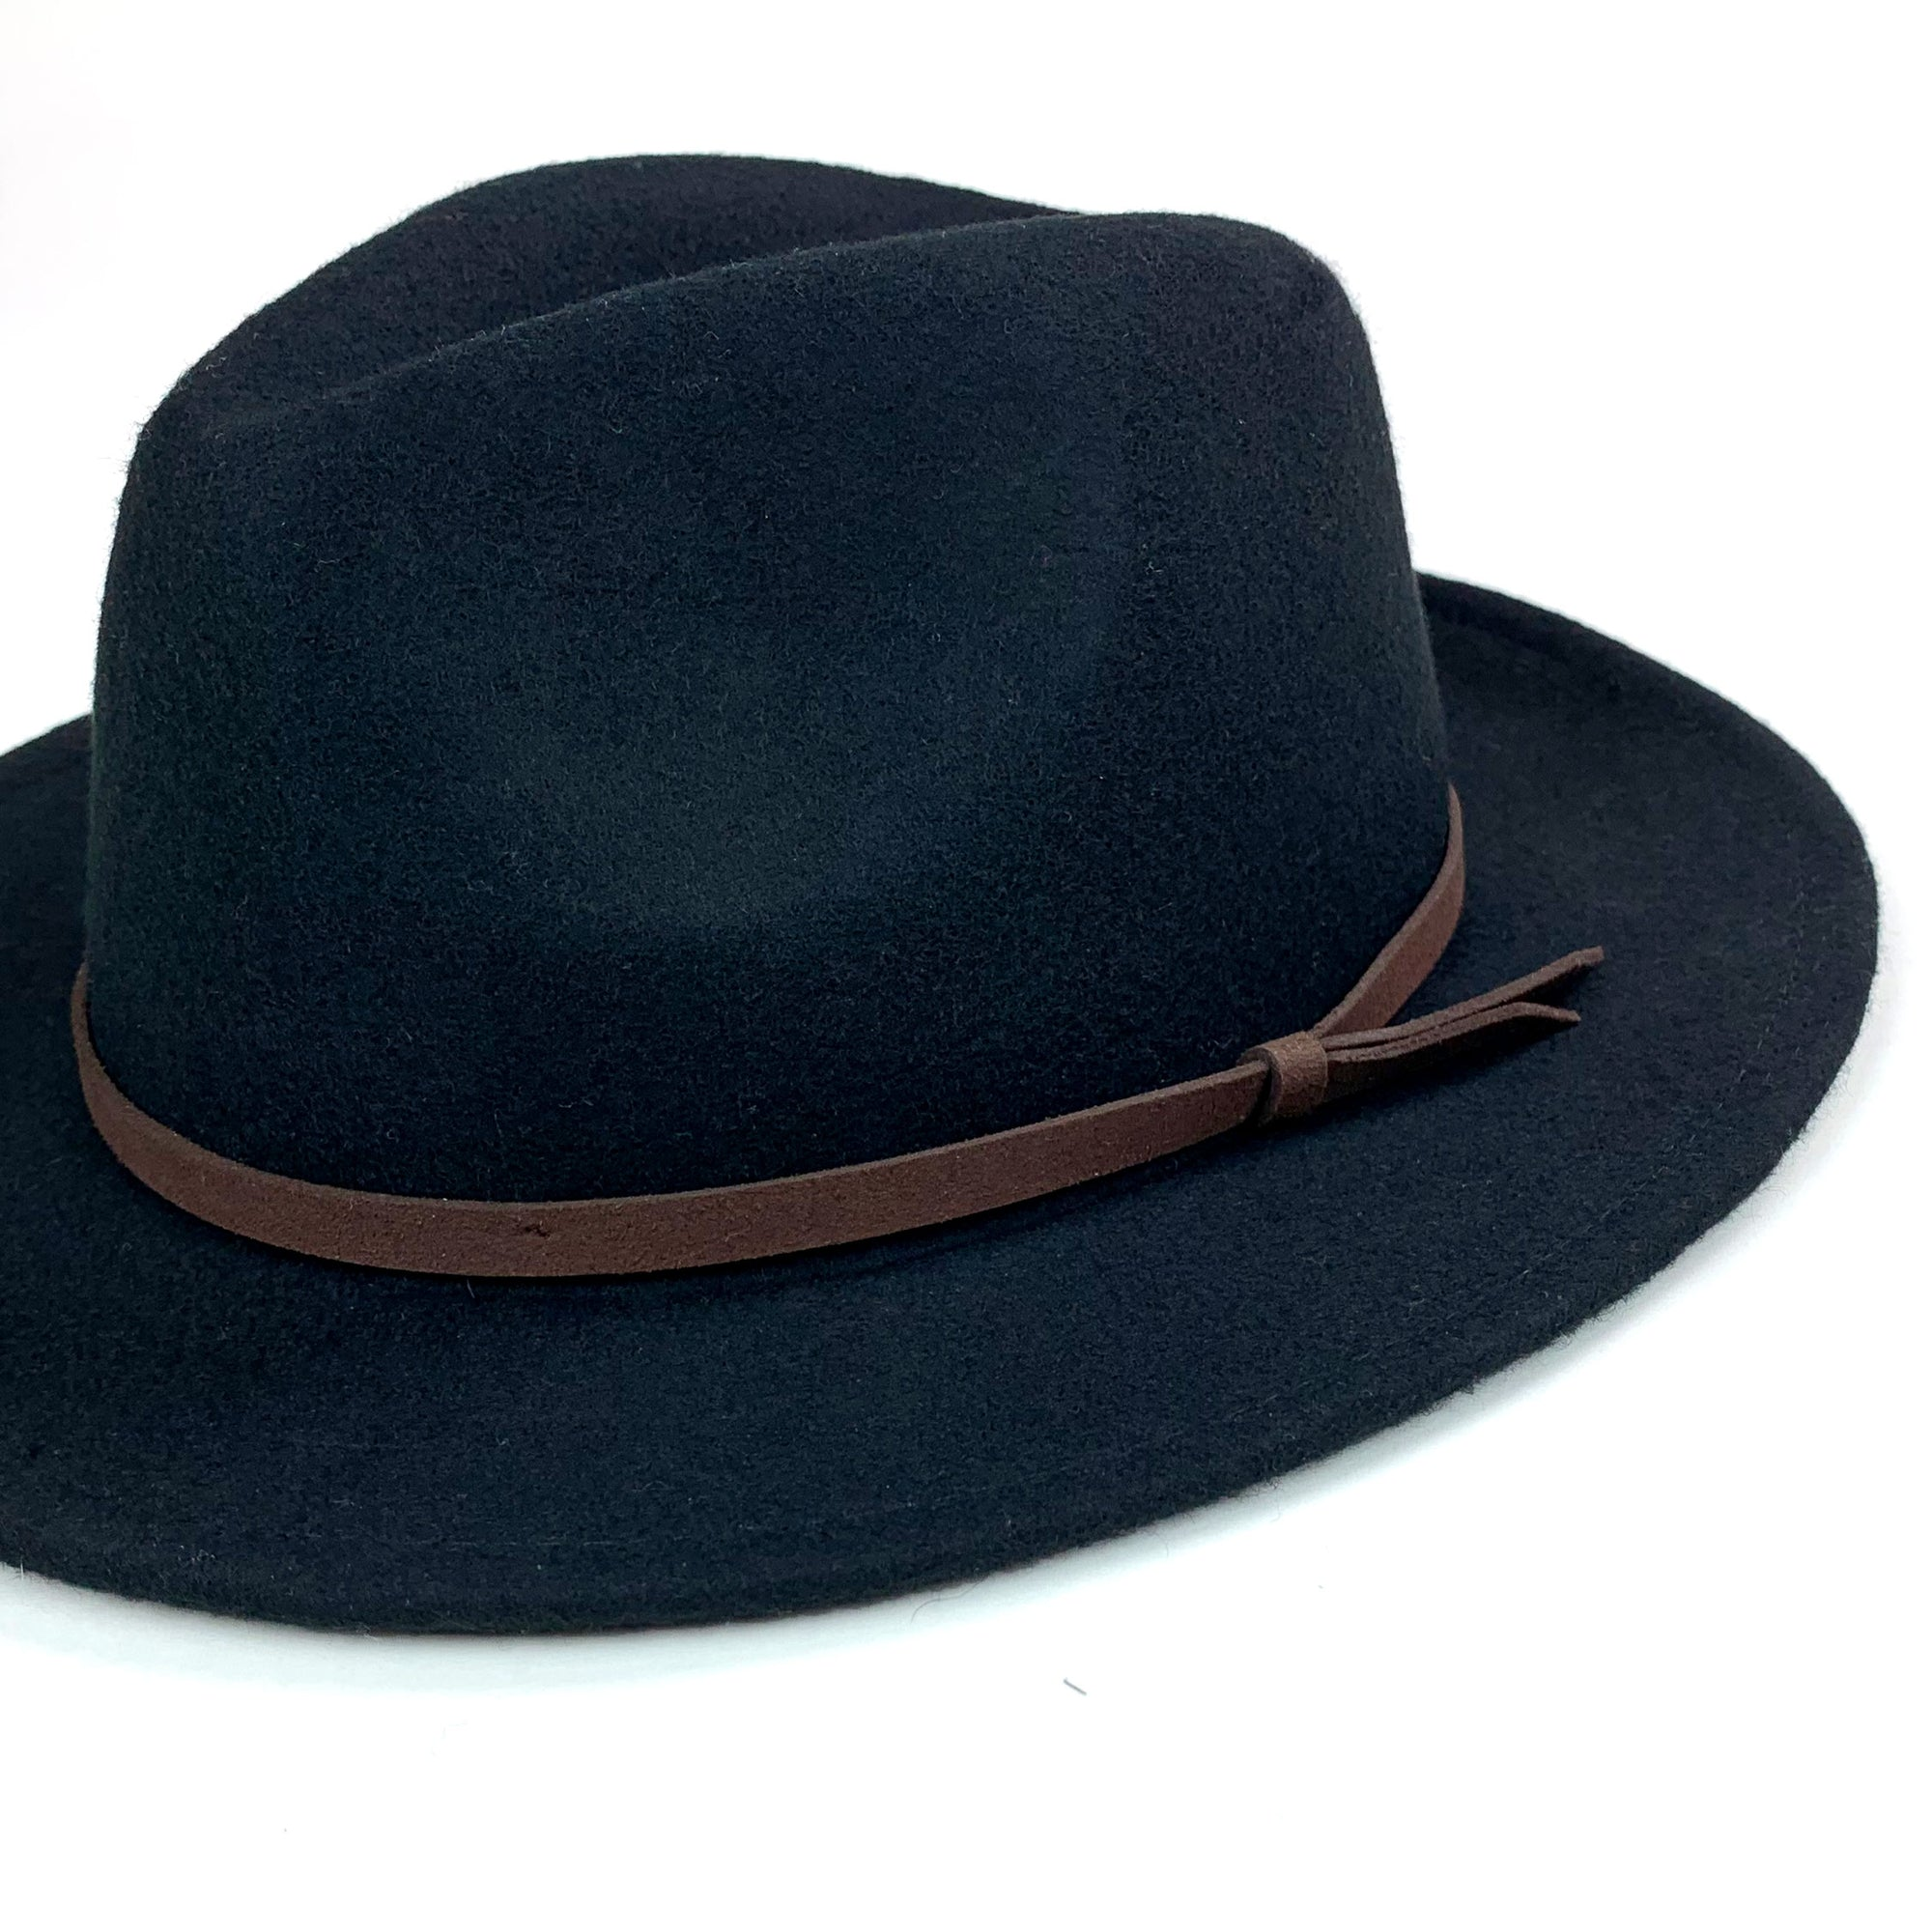 aa0fa40045545 Womens Black Fedora - The Arlo - King and Fifth Supply Co.